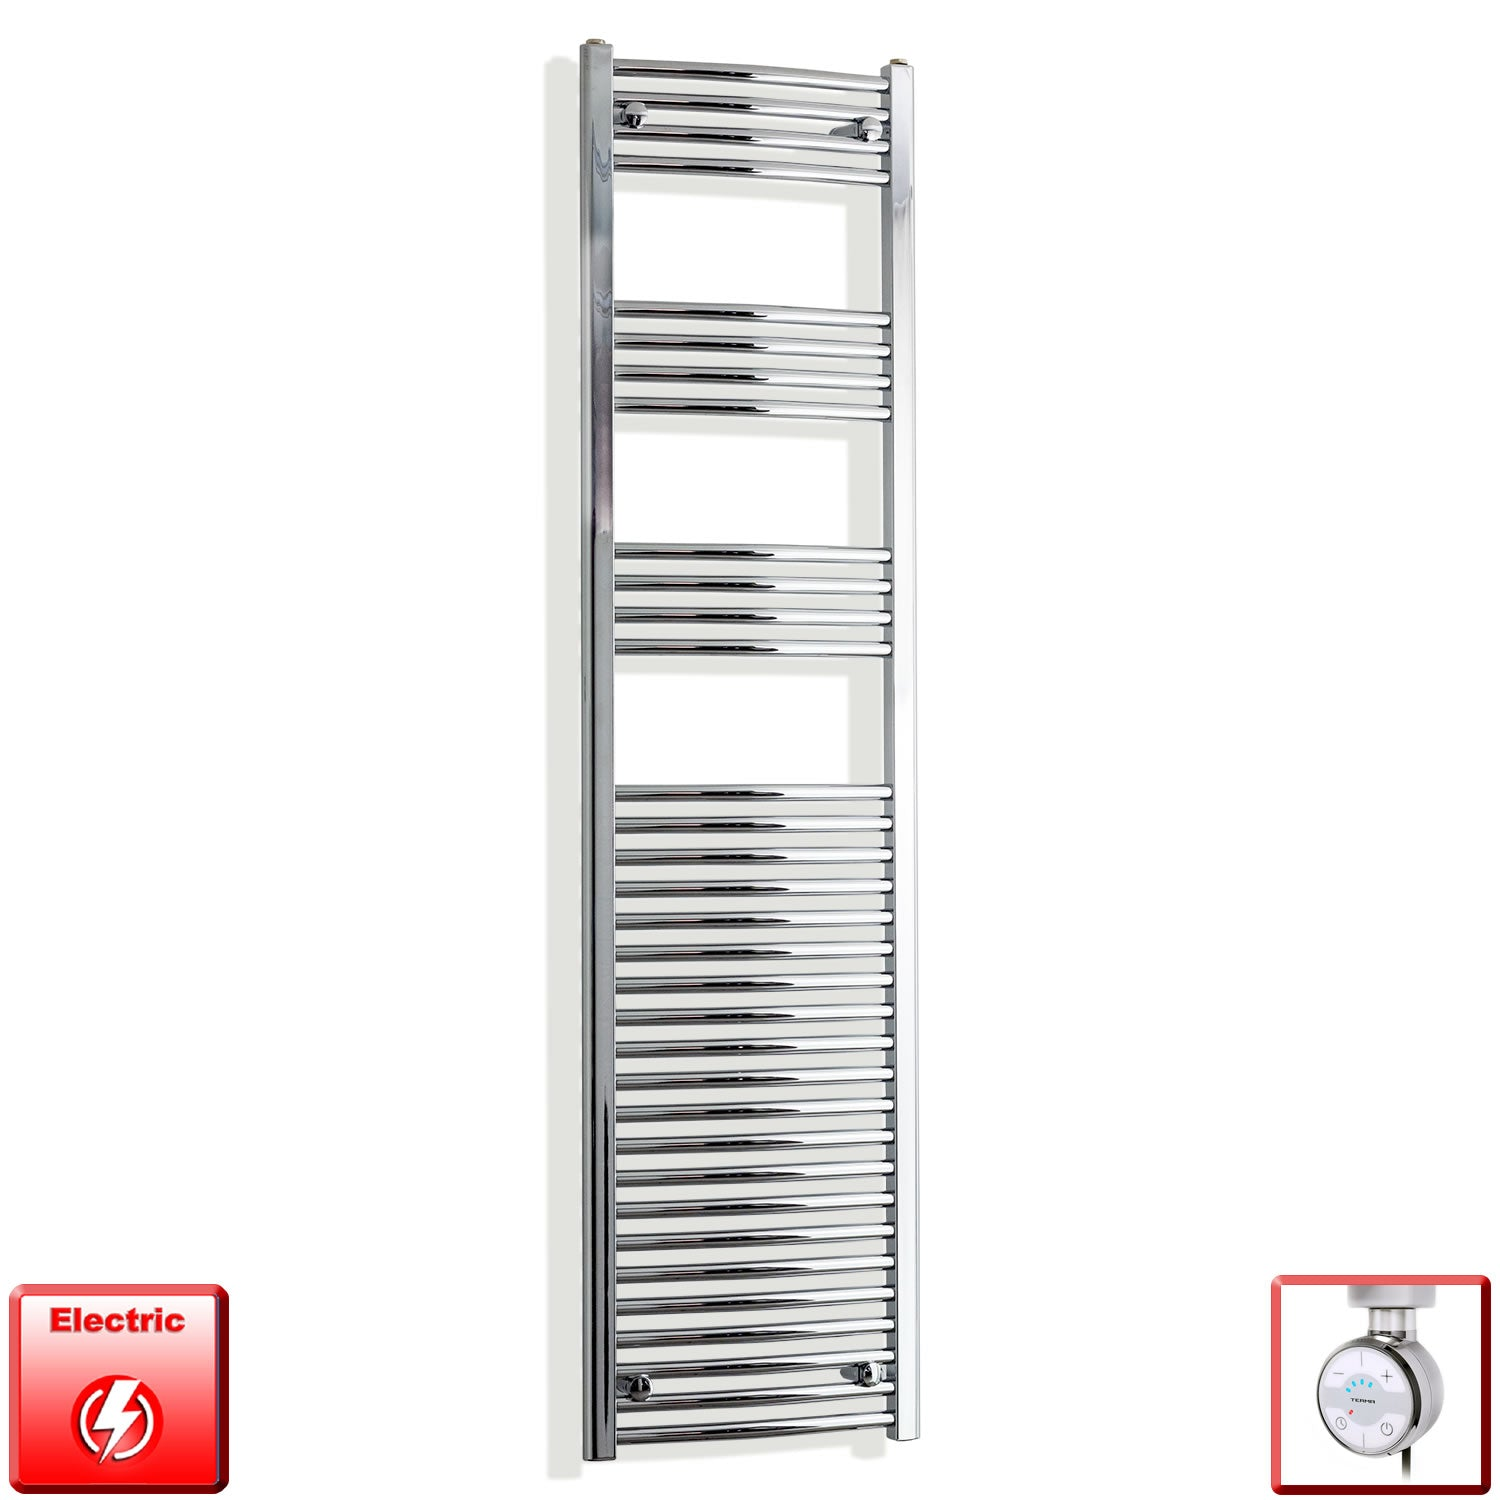 450mm Wide 1800mm High Pre-Filled Chrome Electric Towel Rail Radiator With Thermostatic MOA Element